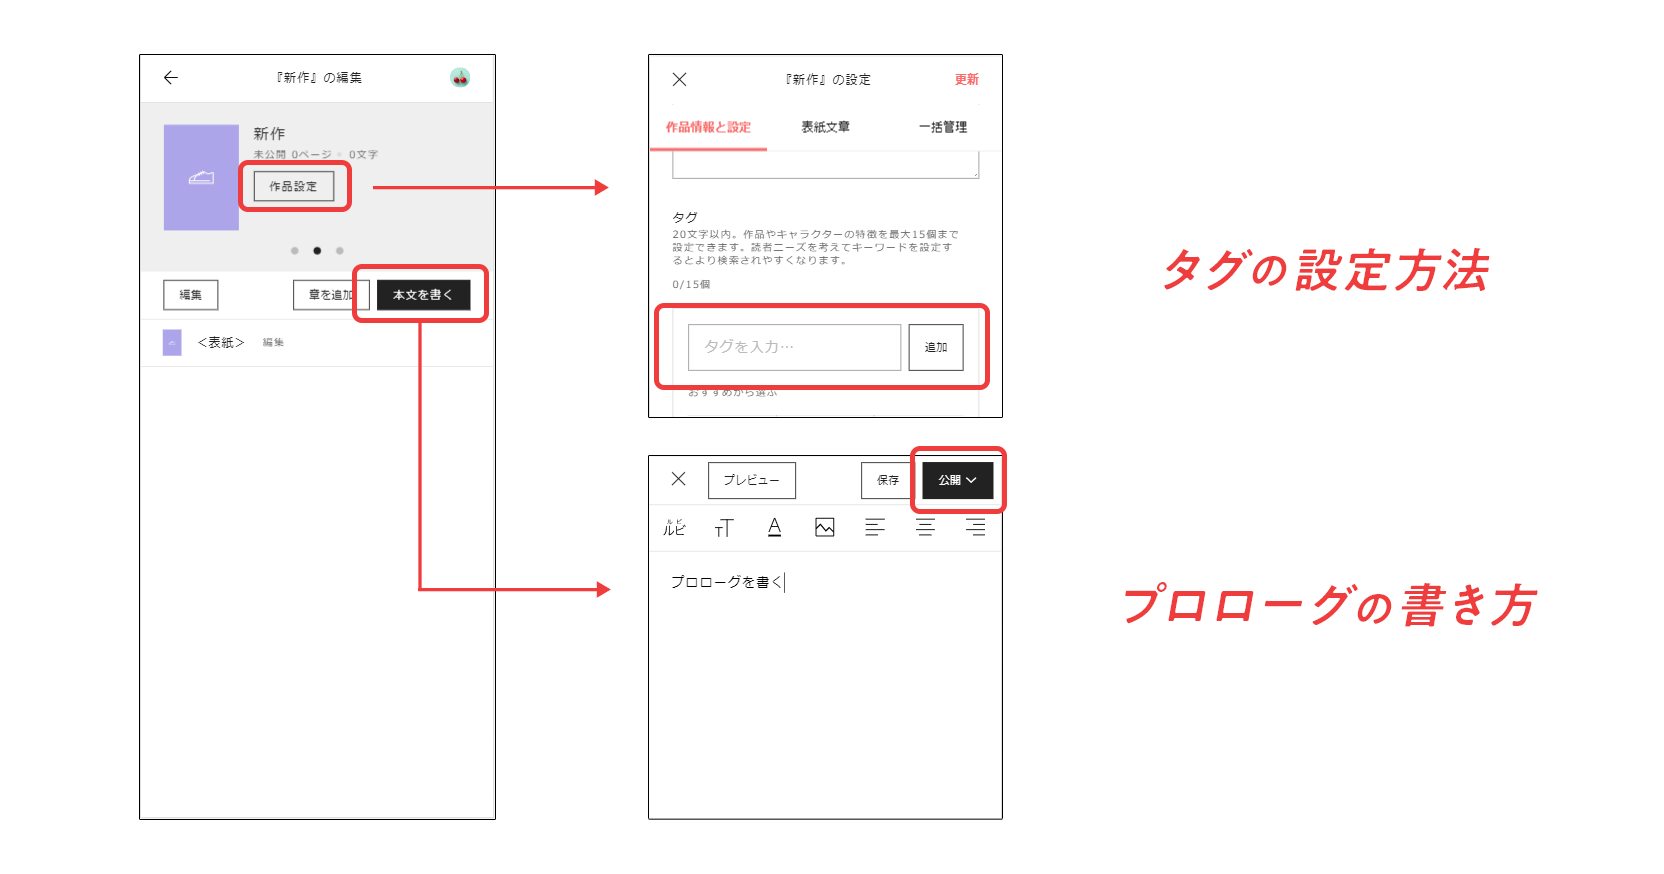 https://storage.googleapis.com/blog-info/entry/2020/05/prologue_setsumei.png